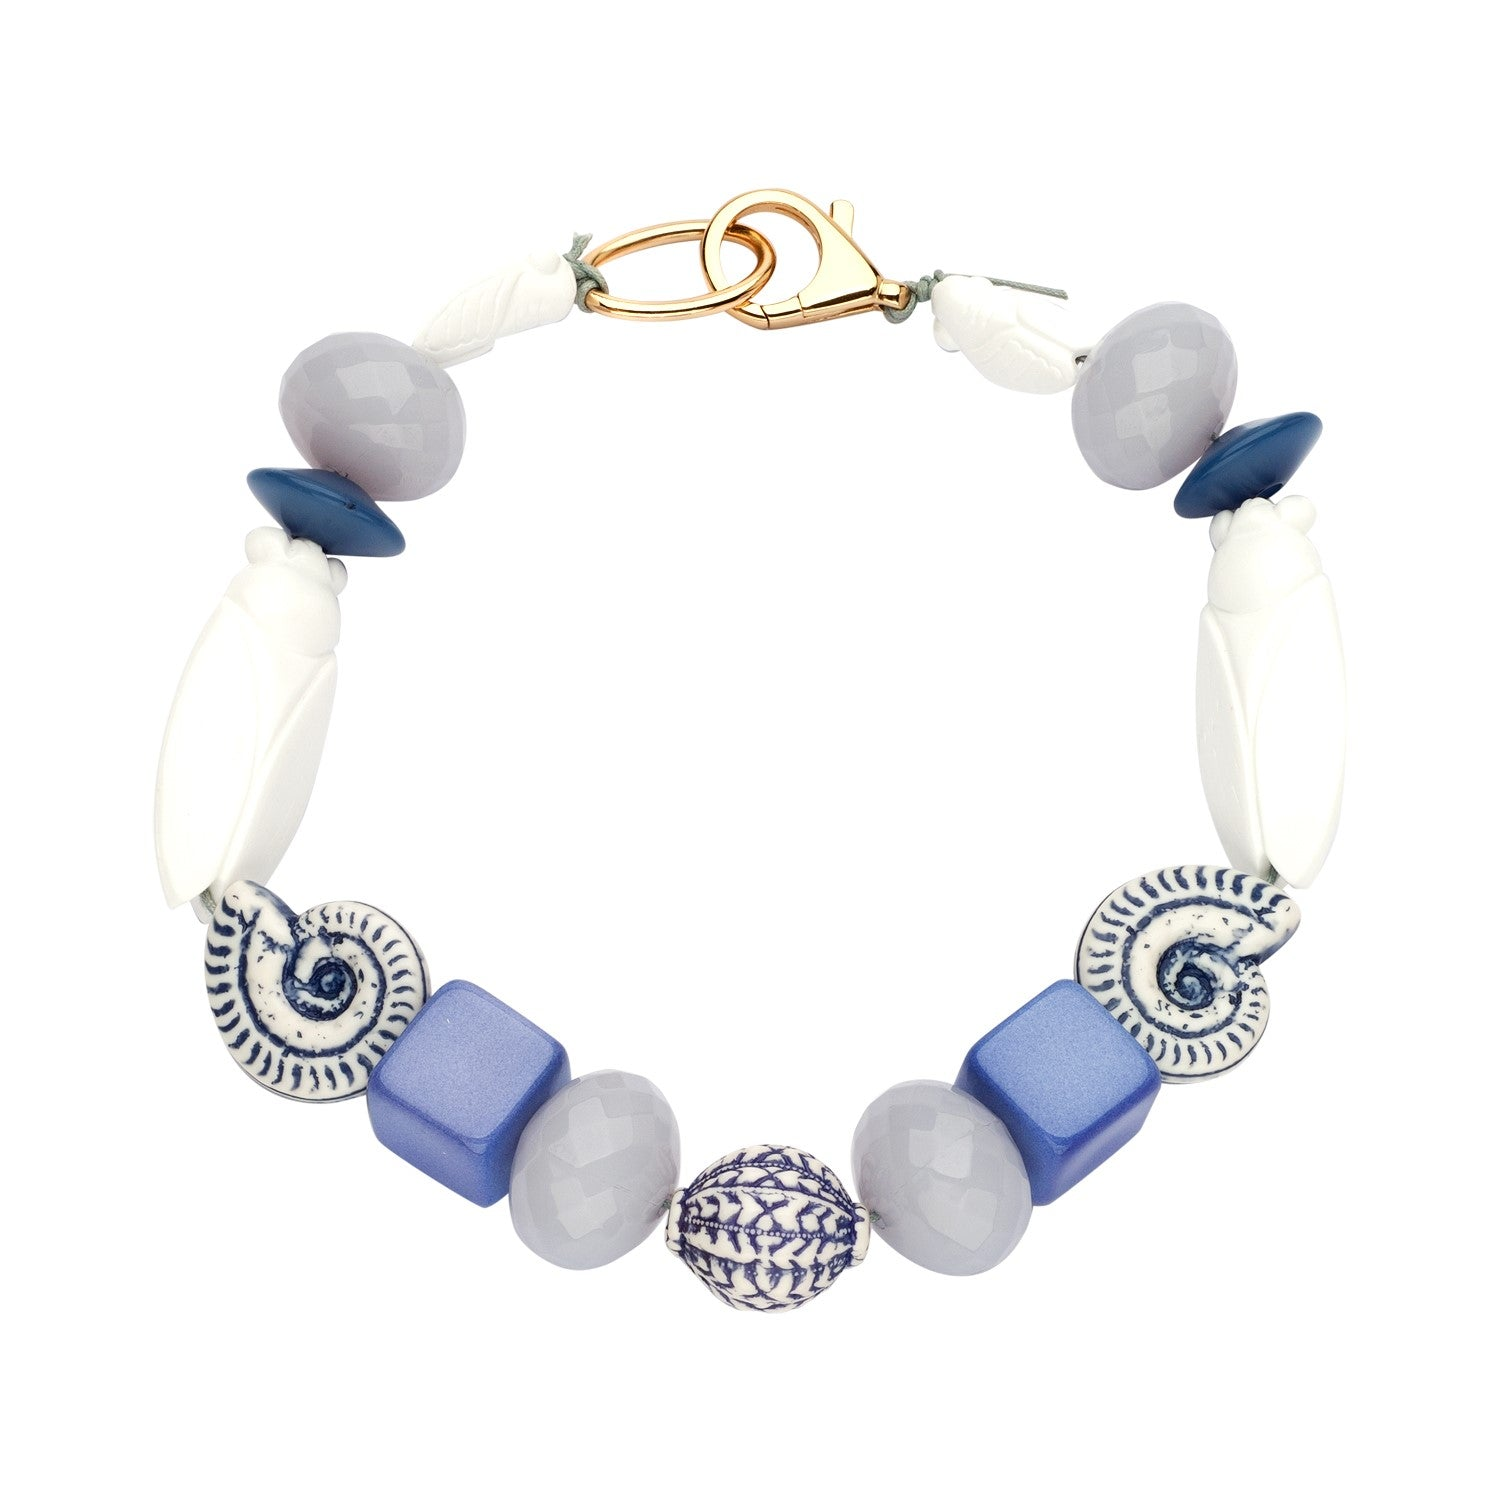 Beaded single necklace blue white - Souvenirs de Pomme